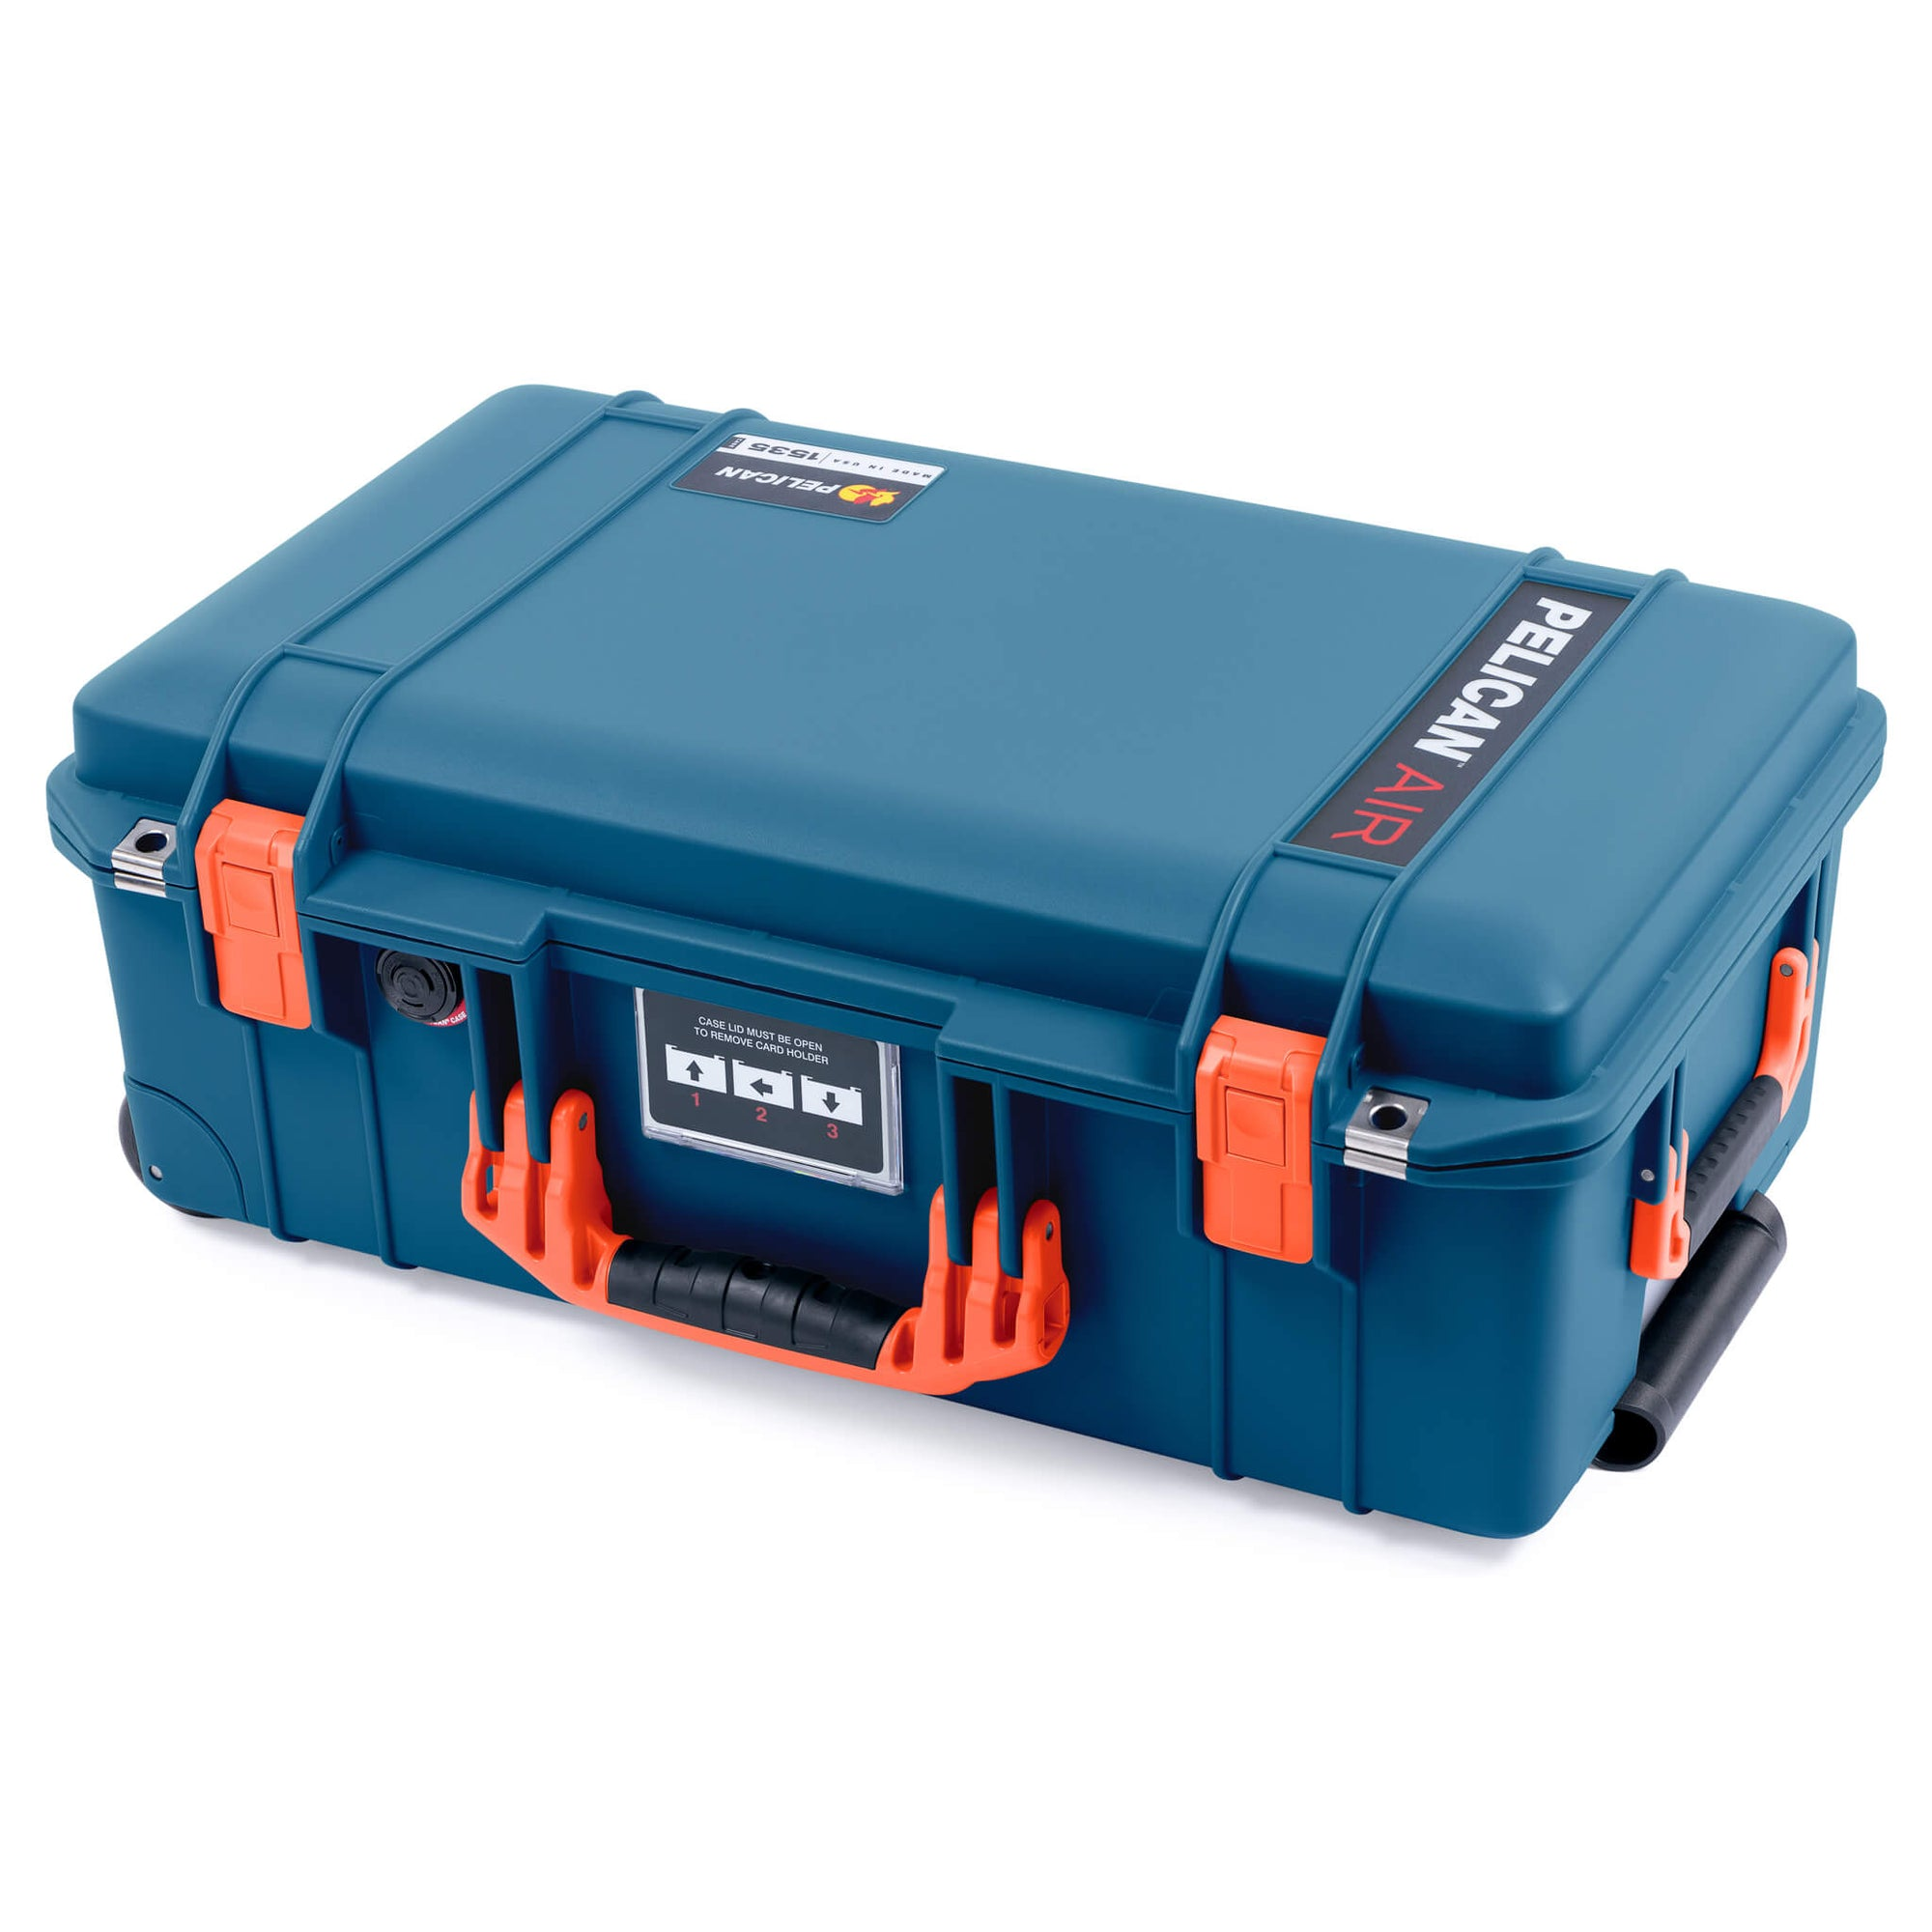 Pelican 1535 Air Case, Indigo with Orange Handles & Latches - Pelican Color Case